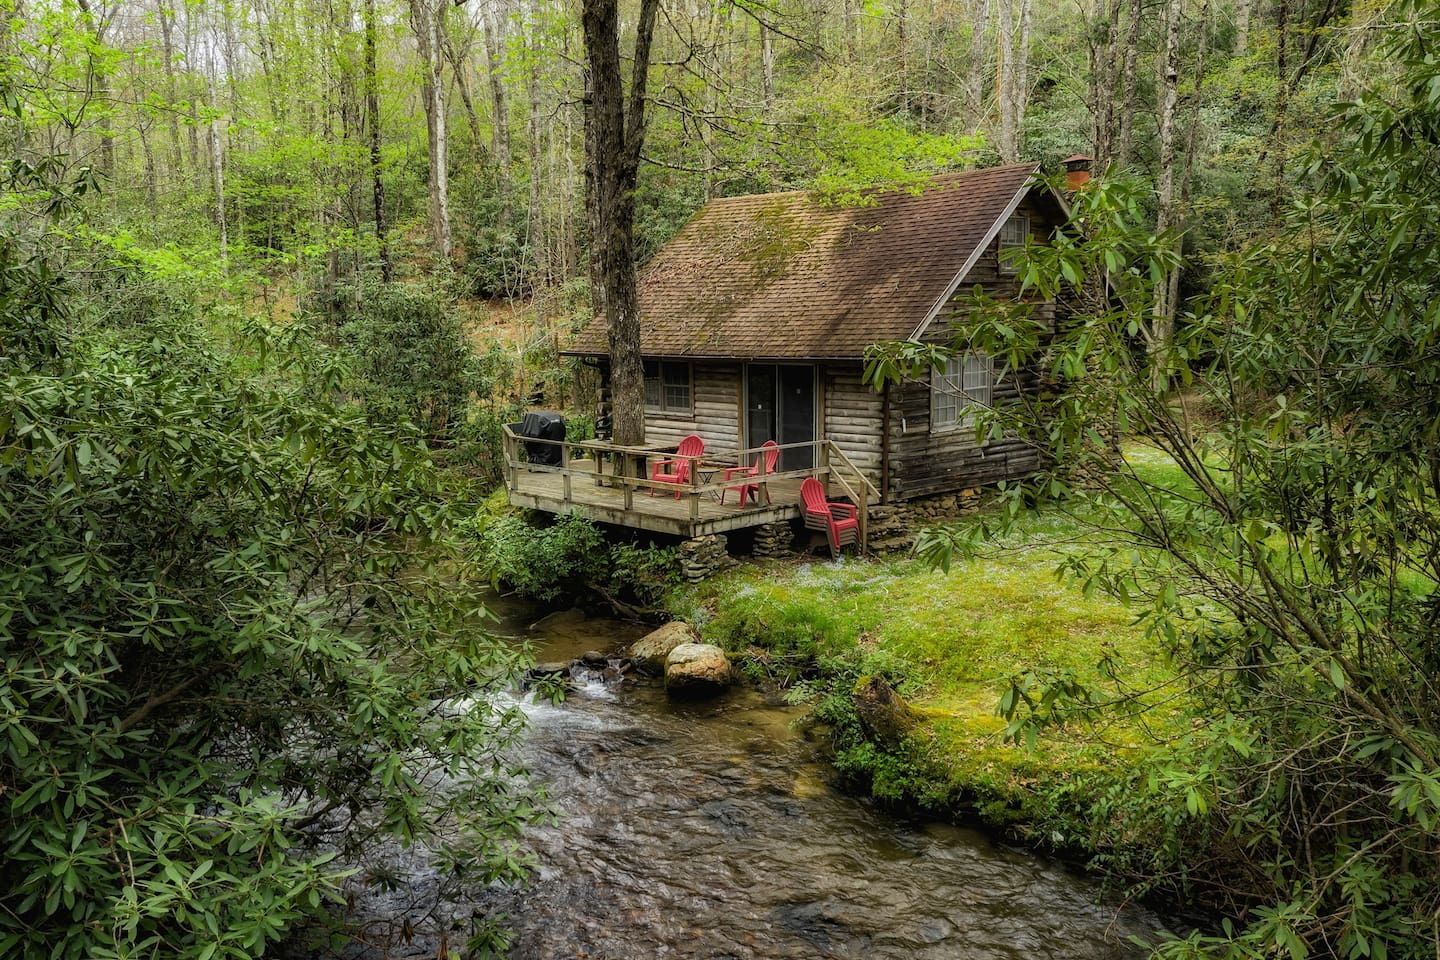 Cabin sits directly on the Creek. The deck is a perfect place to enjoy a wine or coffee.